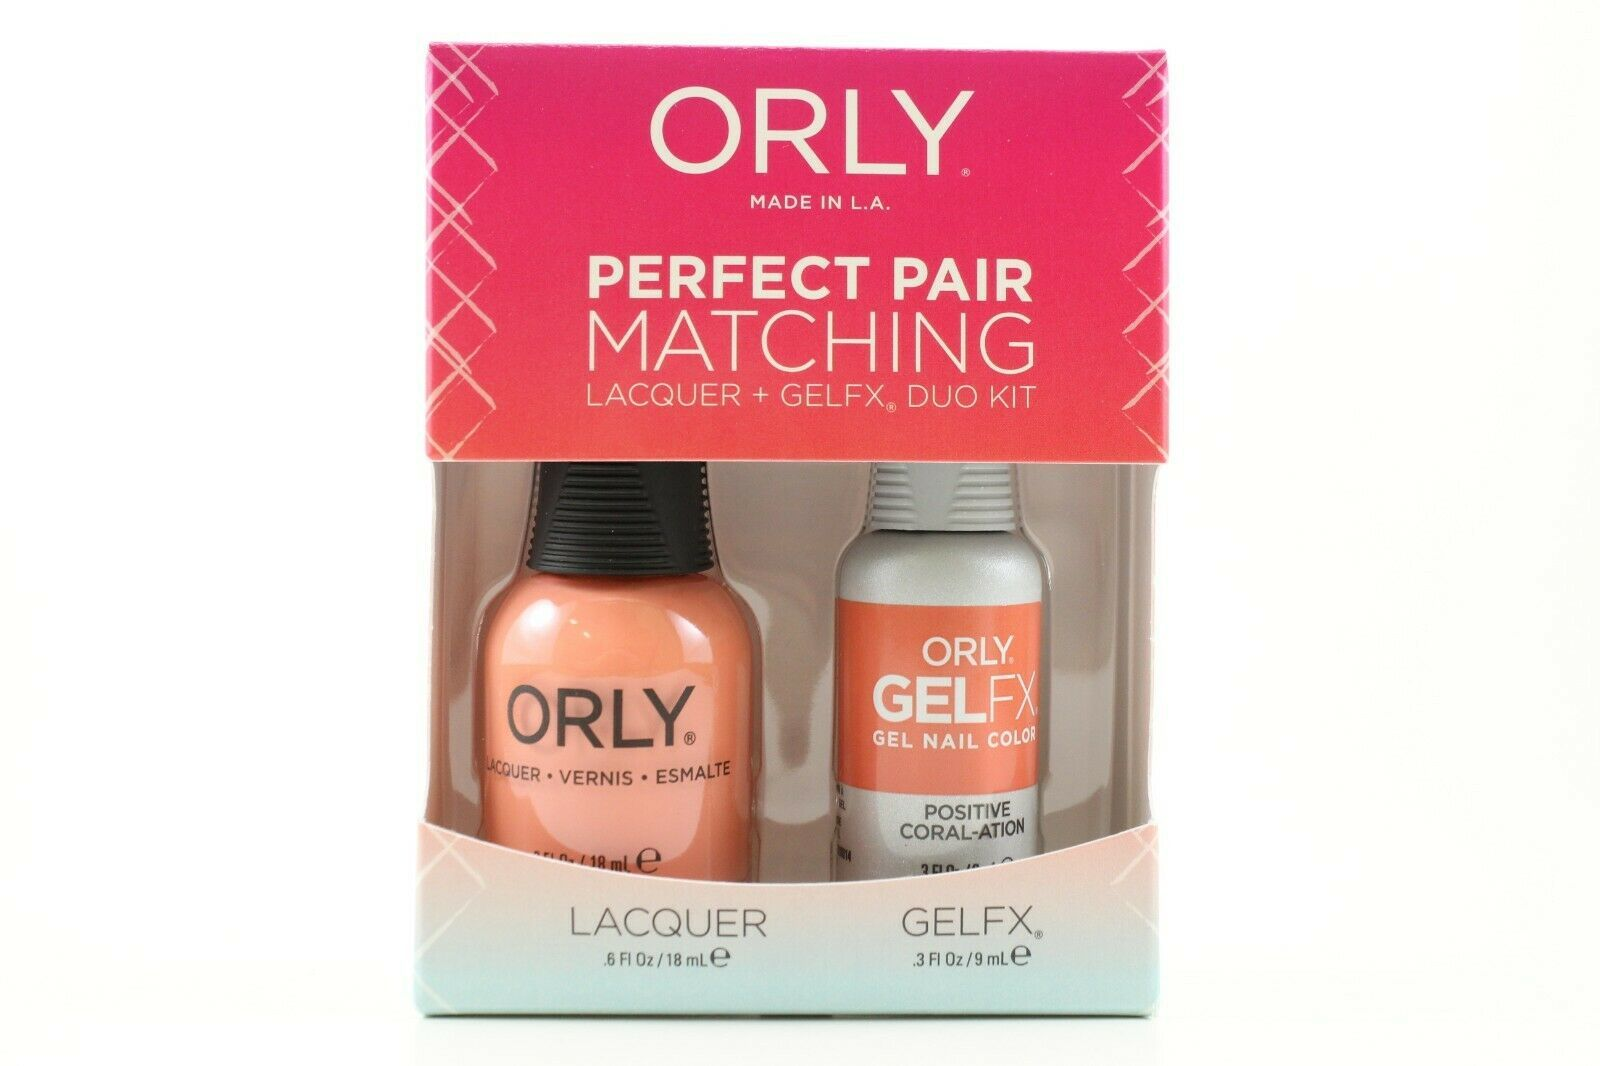 Primary image for 3100014 - Orly Gel FX .3oz + Nail Lacquer .6oz Combo - Positive Coral-ation